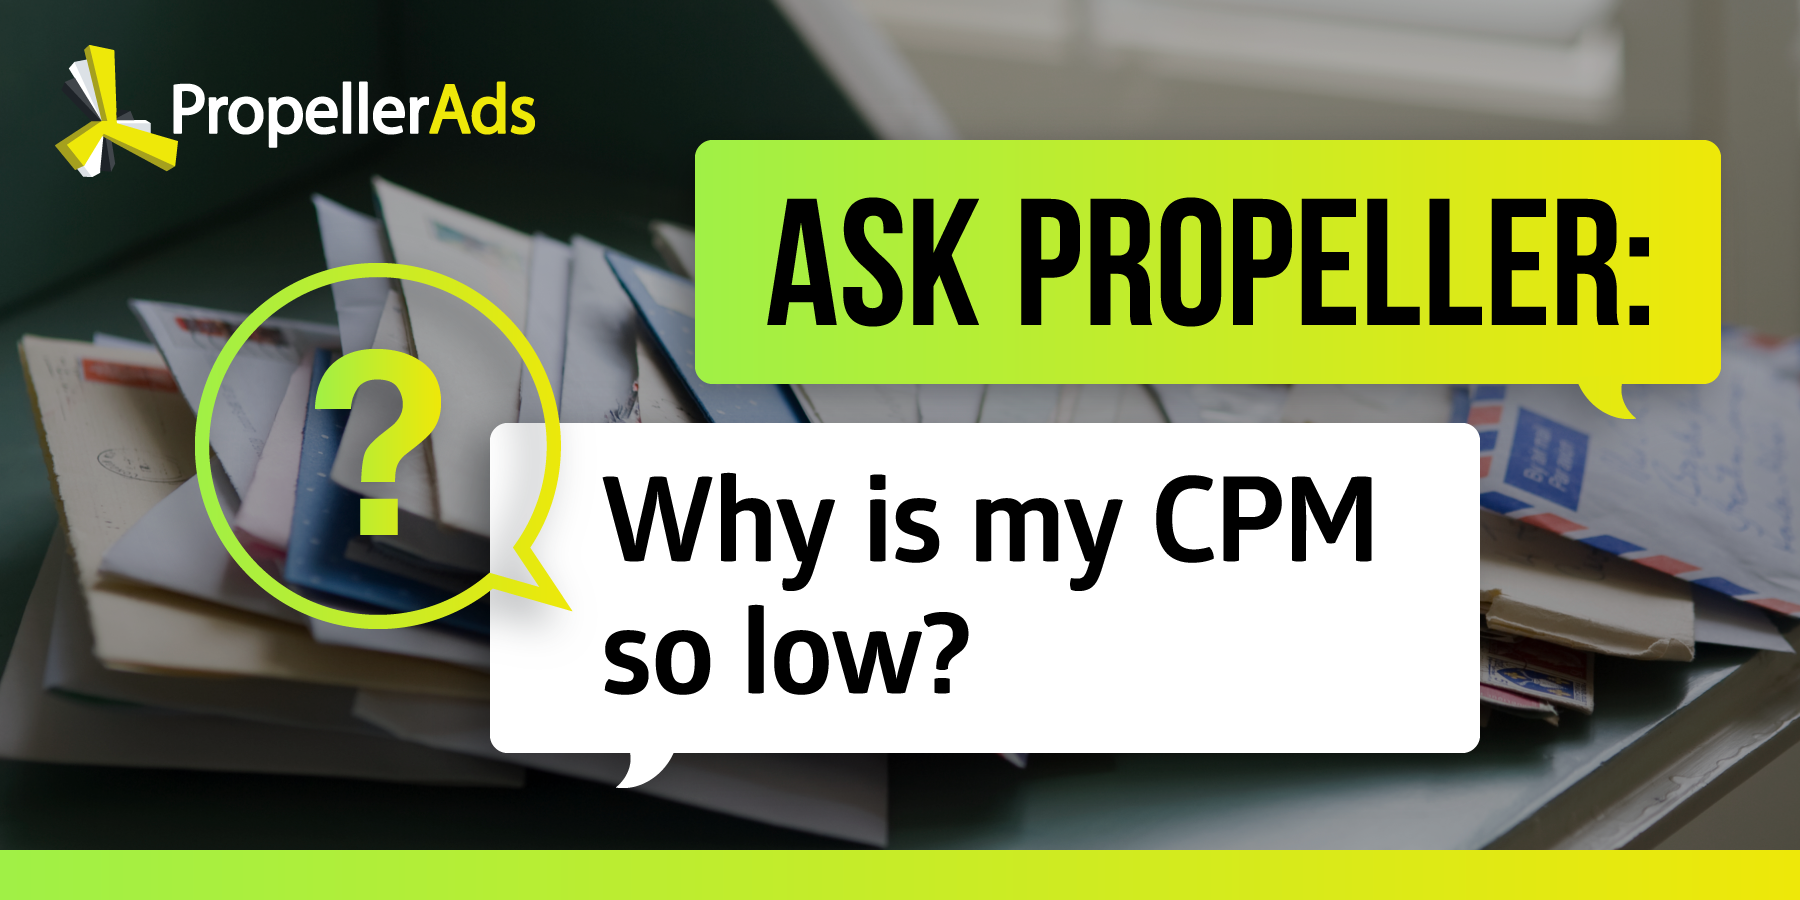 Why is my CPM so low?